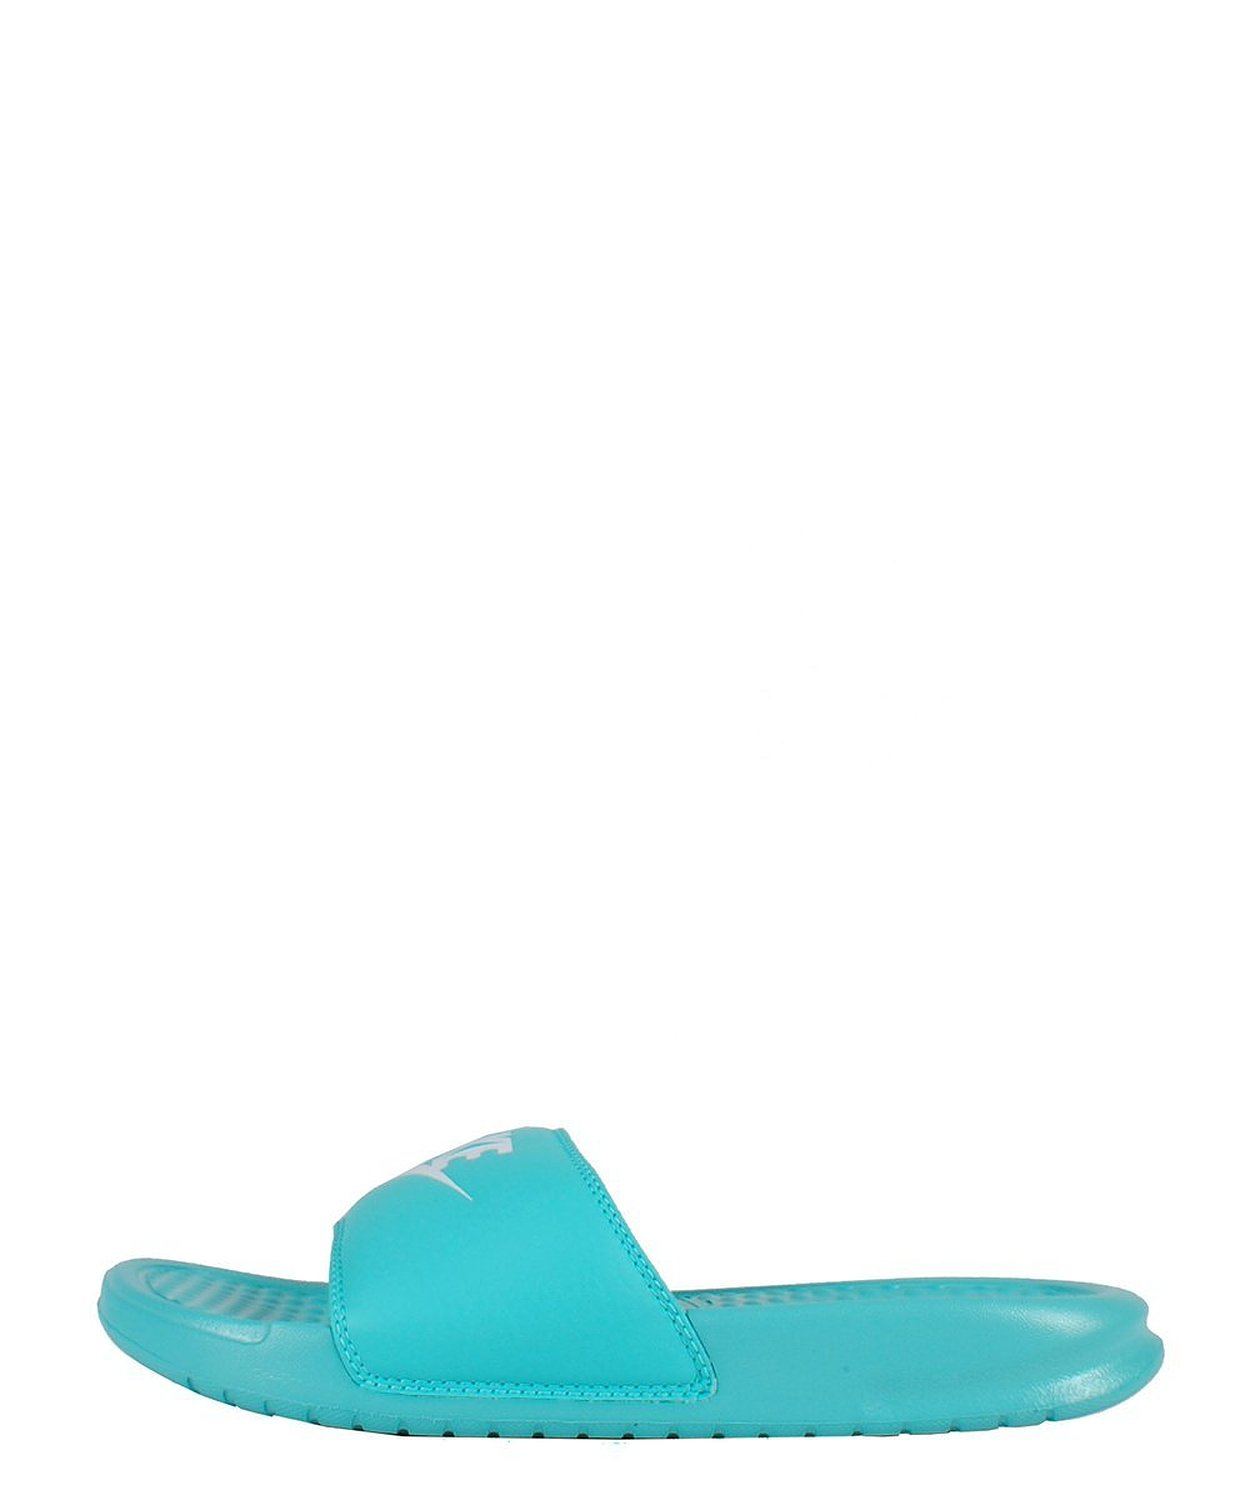 0f5ee0c8db3277 ... discount code for nike womens benassi just do it sandal 5 hyper  turquoise white amazon 535f3 ...